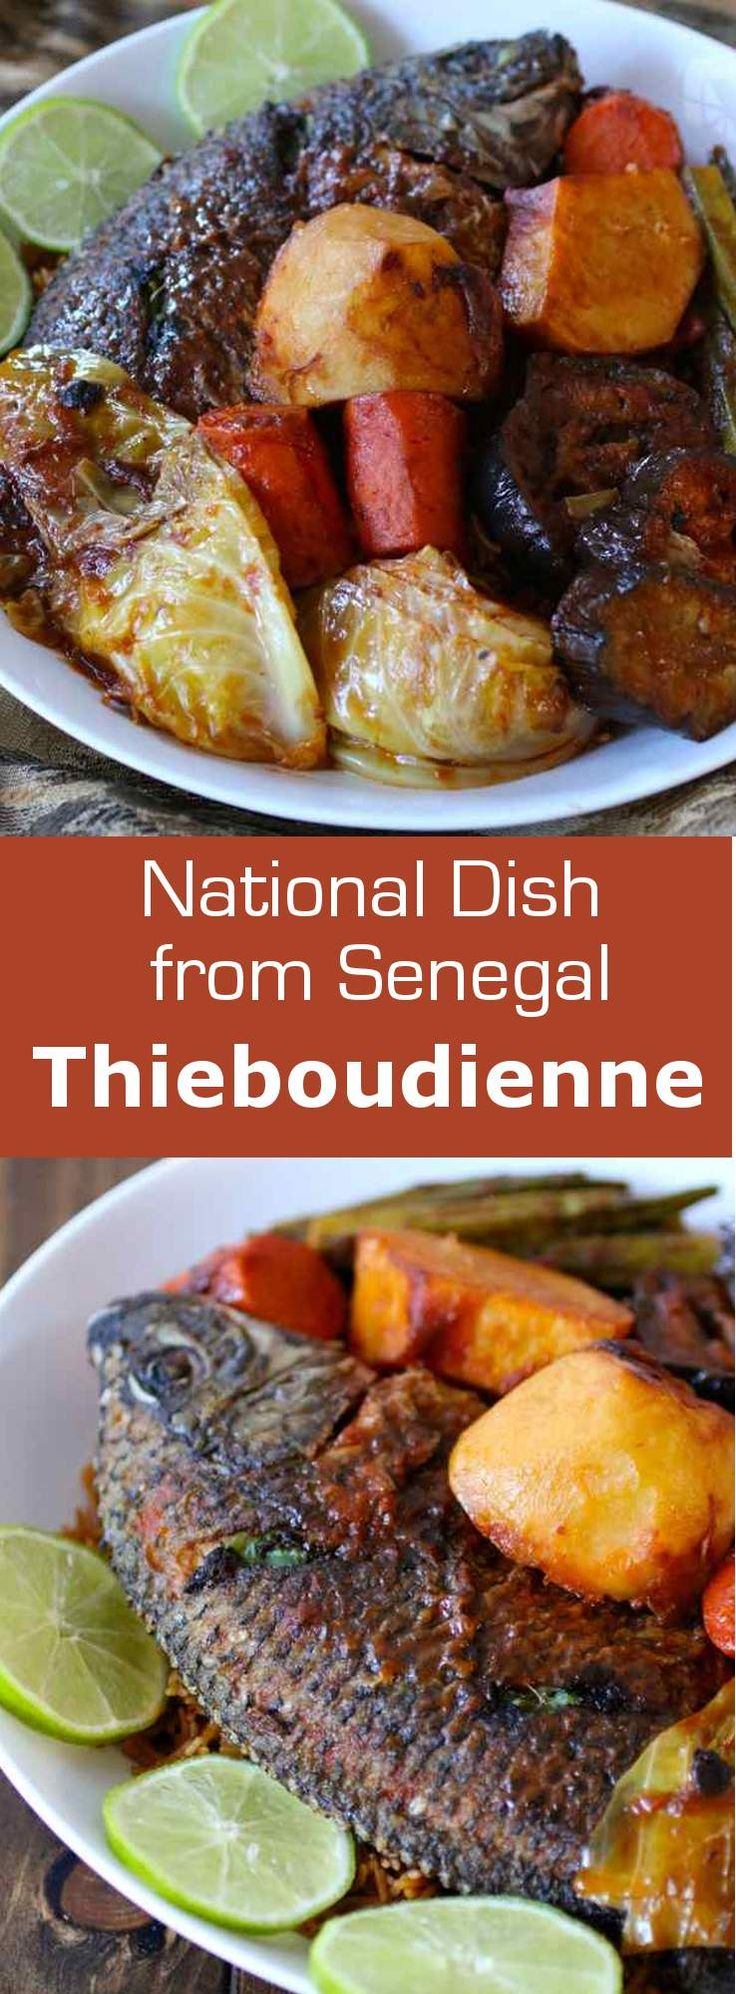 Thieboudienne Is the Senegalese national dish. It is prepared with rice, fish, vegetables, tomatoes and various spices like nététou. #Senegal #Africa #196flavors